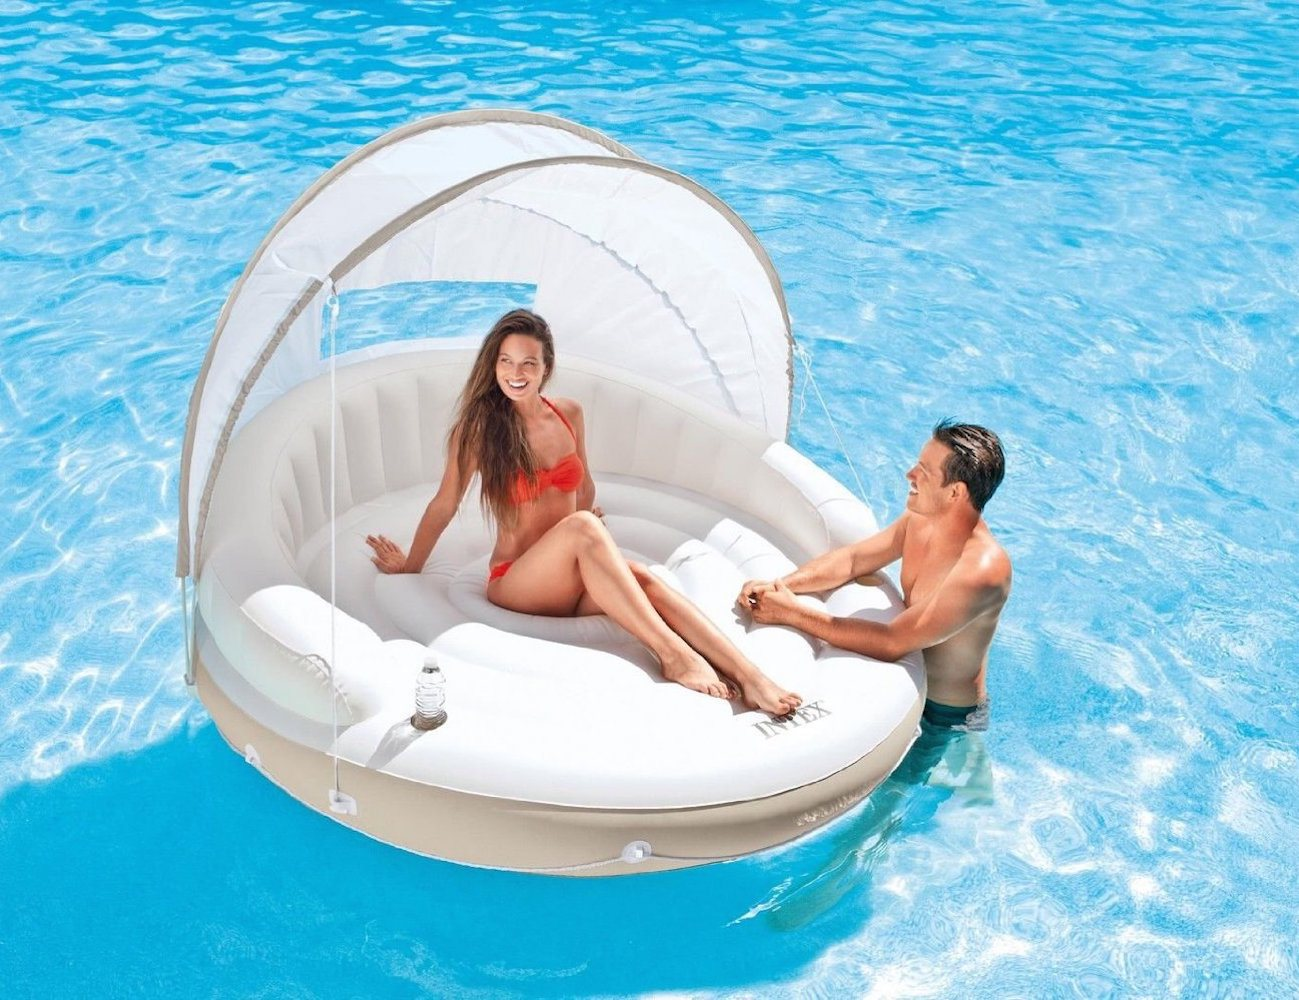 Canopy Island Inflatable Water Lounge Raft by Intex Review